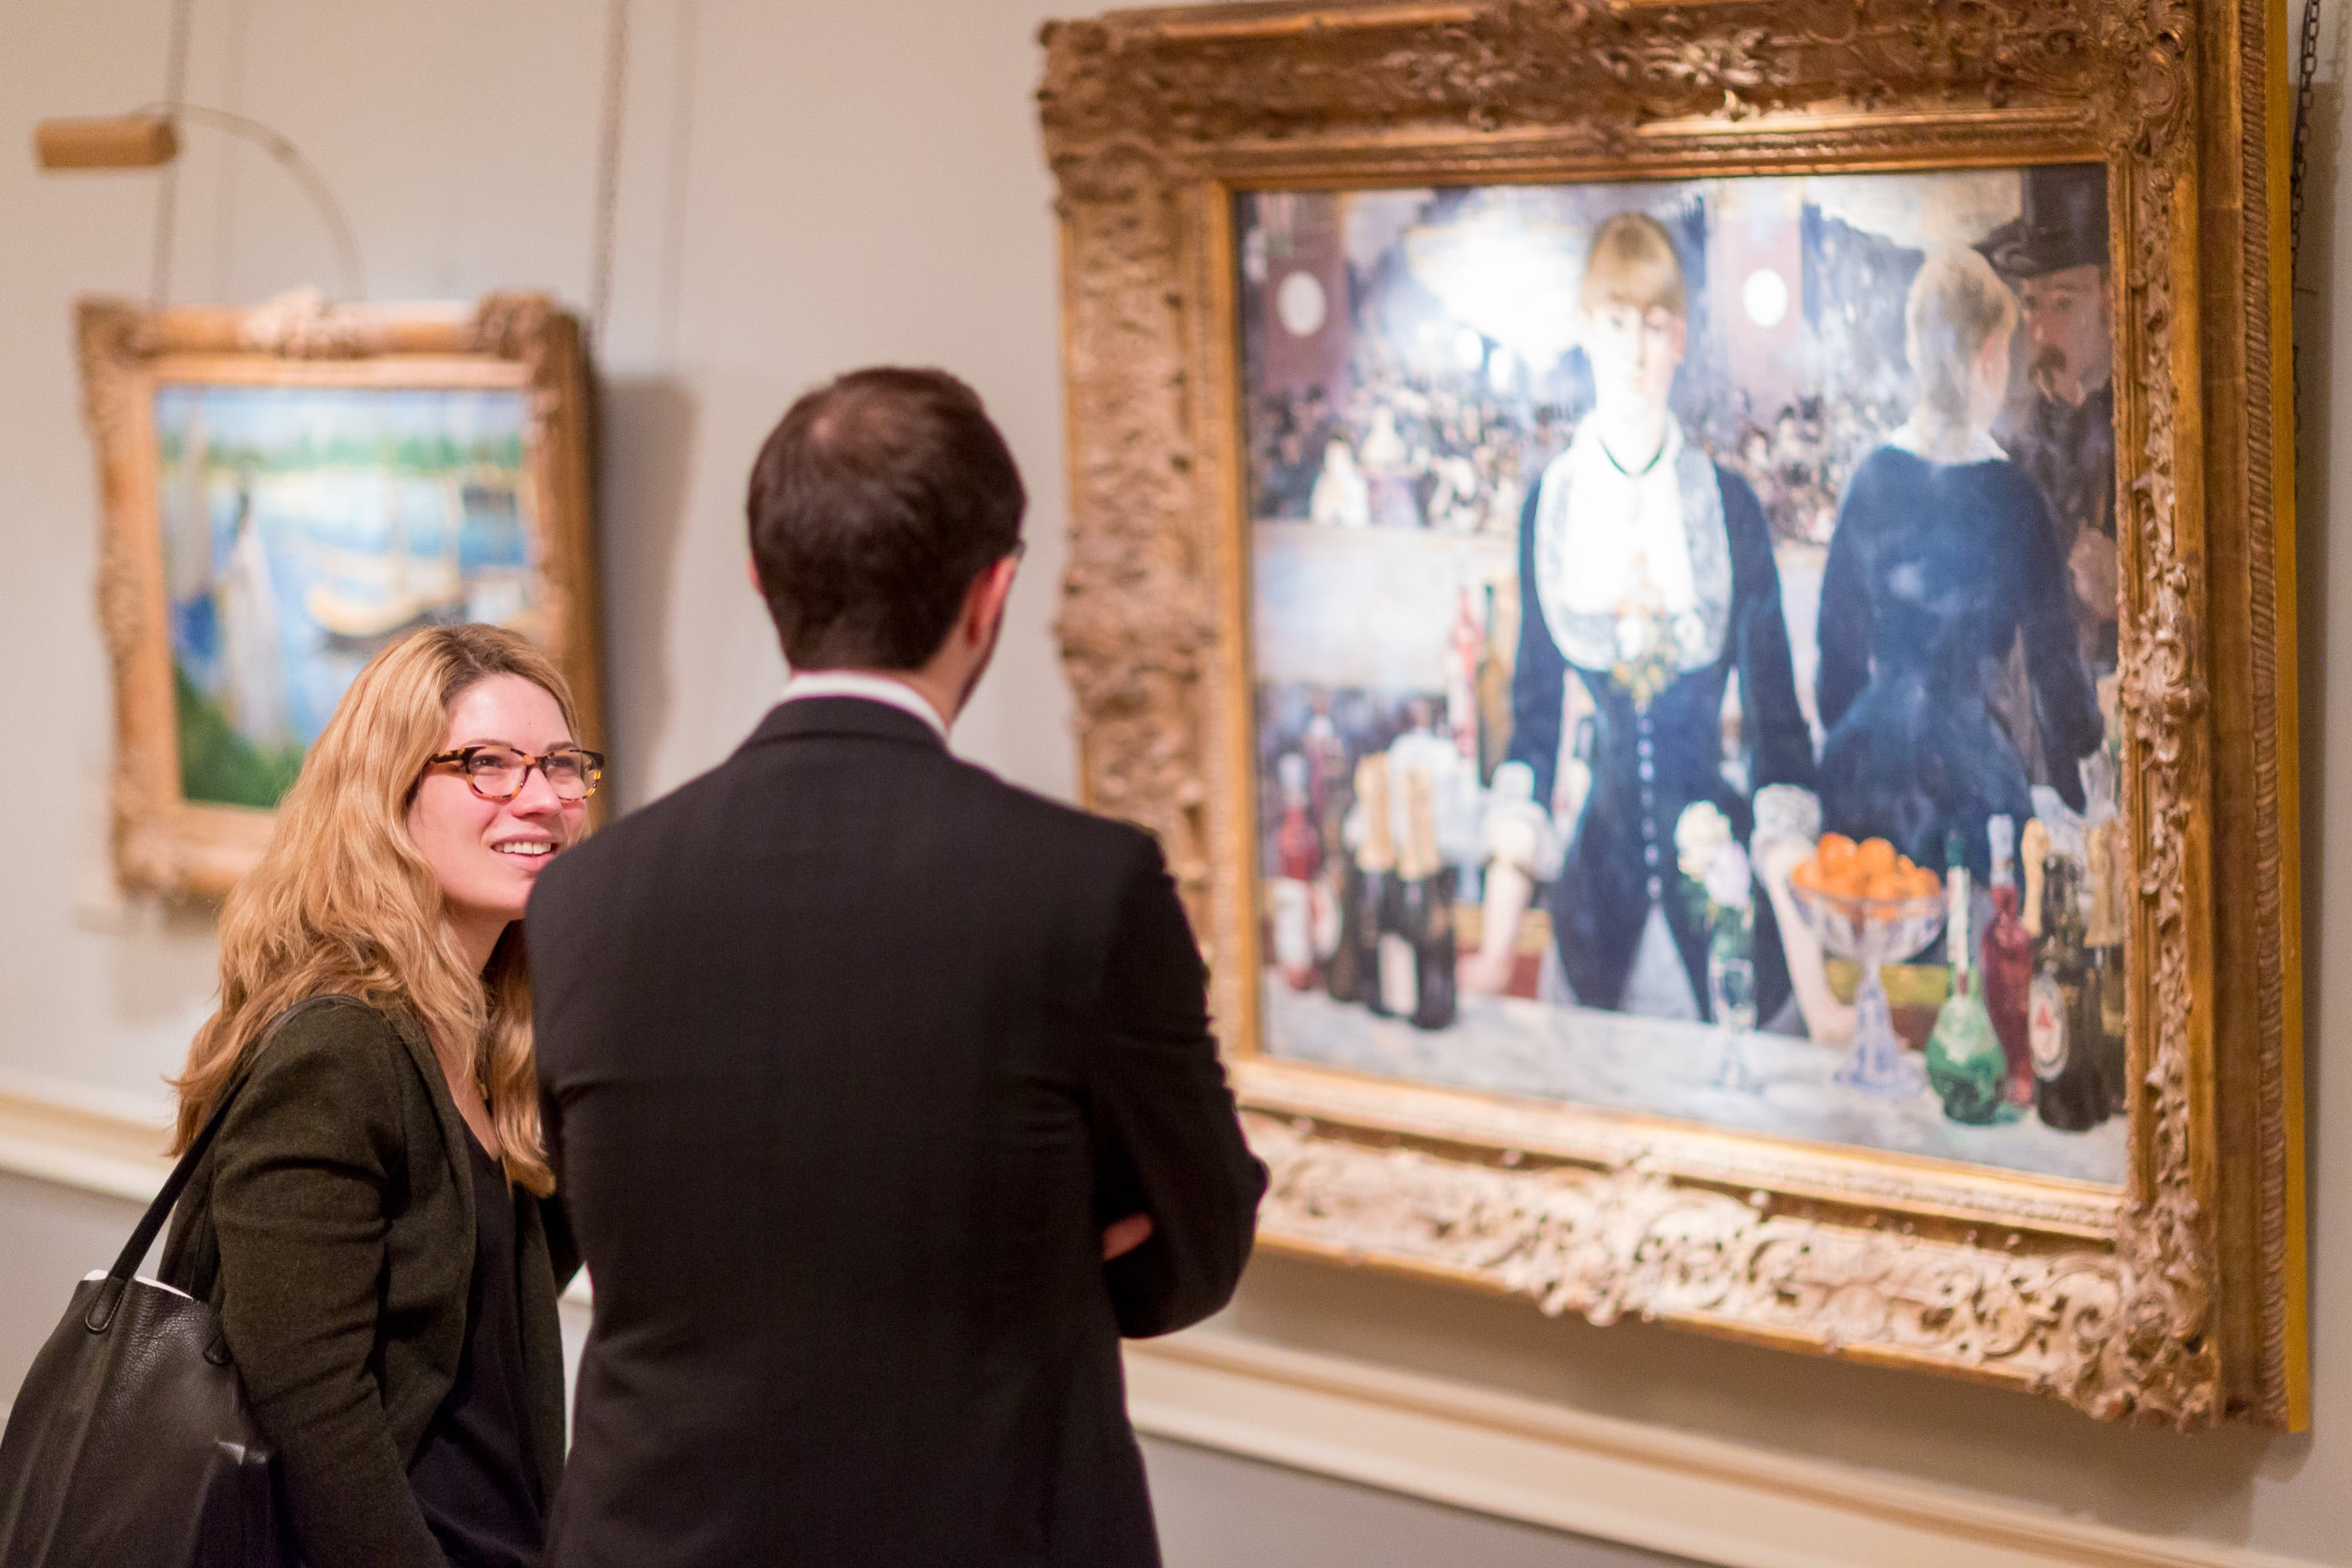 1. The Courtauld Gallery, London - Free entry with National Art Pass